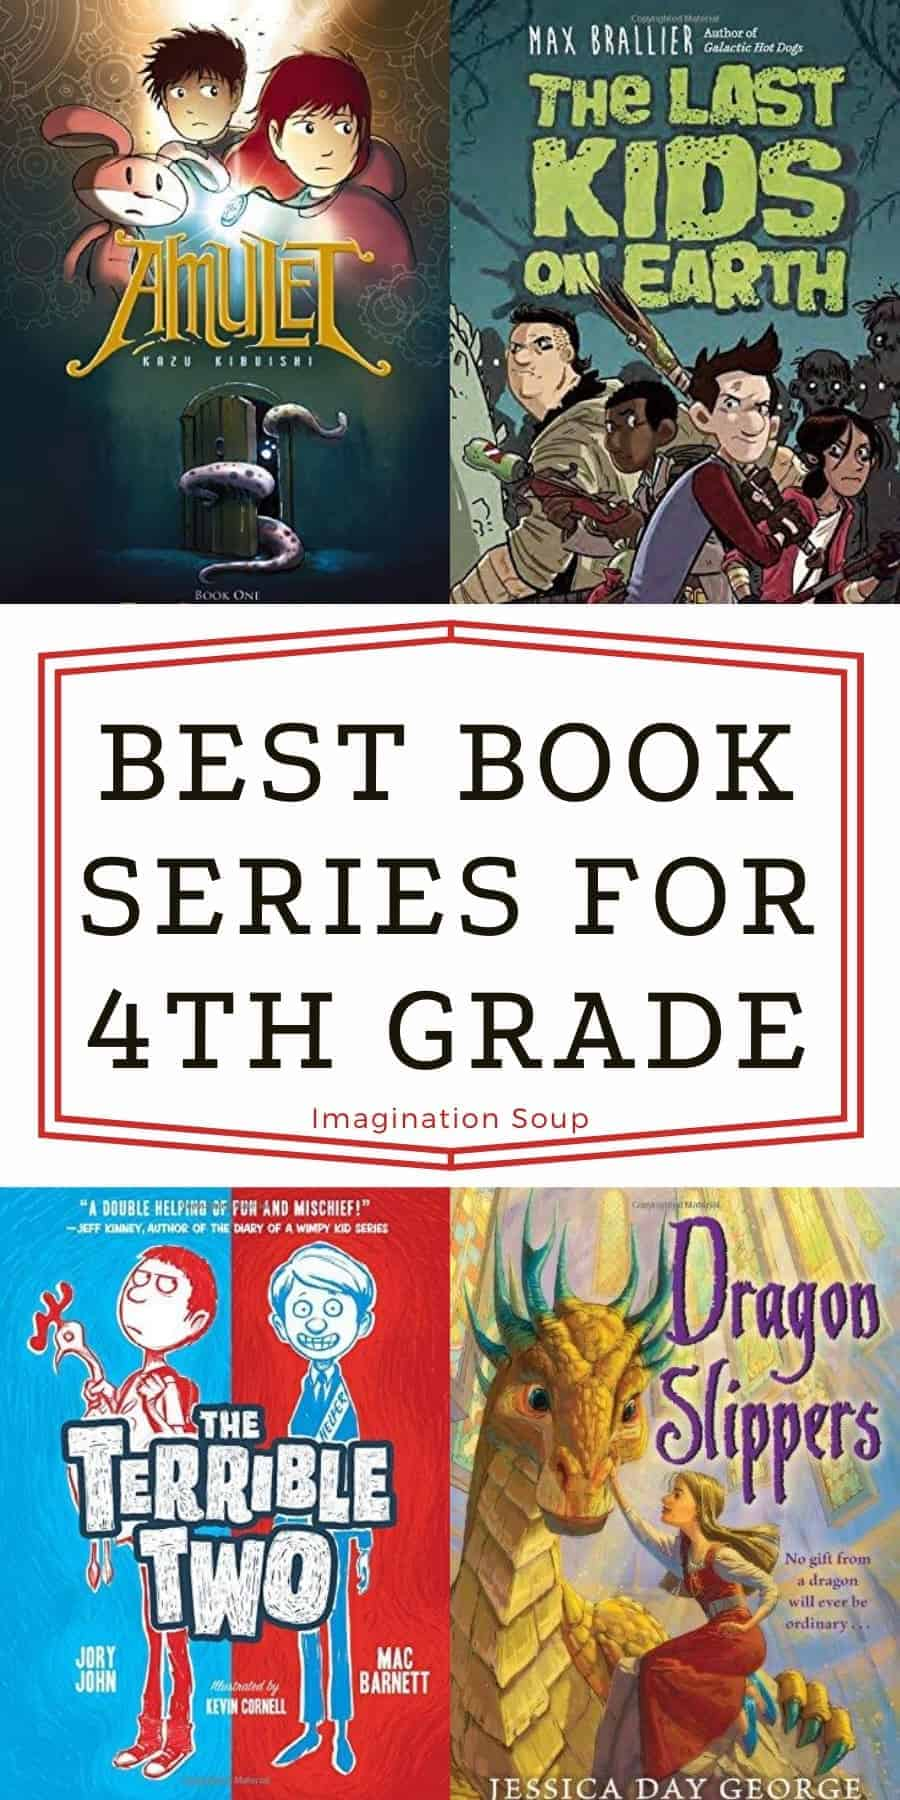 best book series for 4th grade (age 9 and 10)